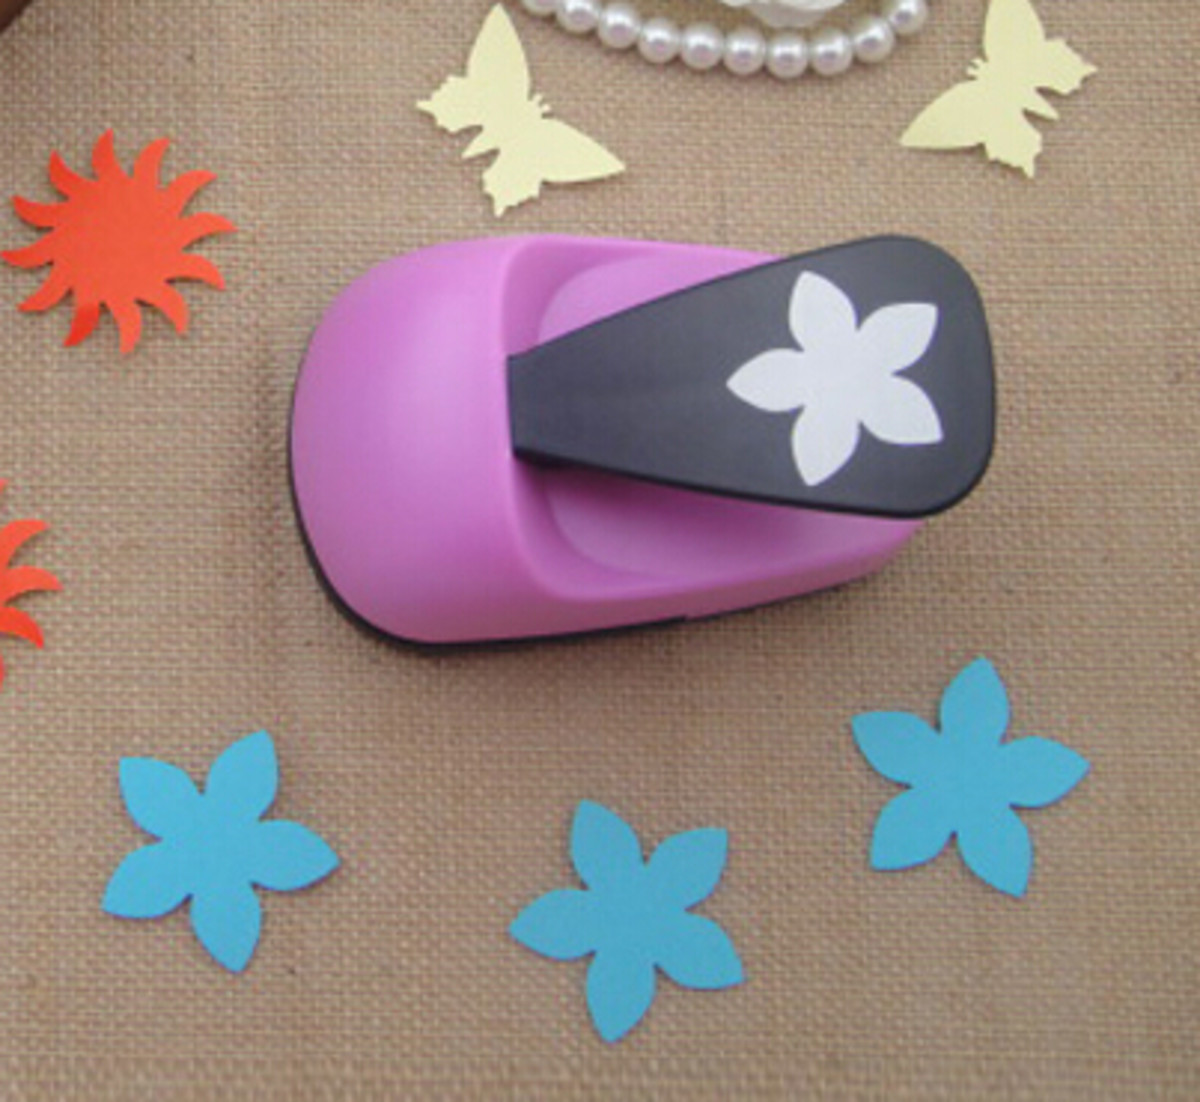 Punches have always been a popular paper craft tool